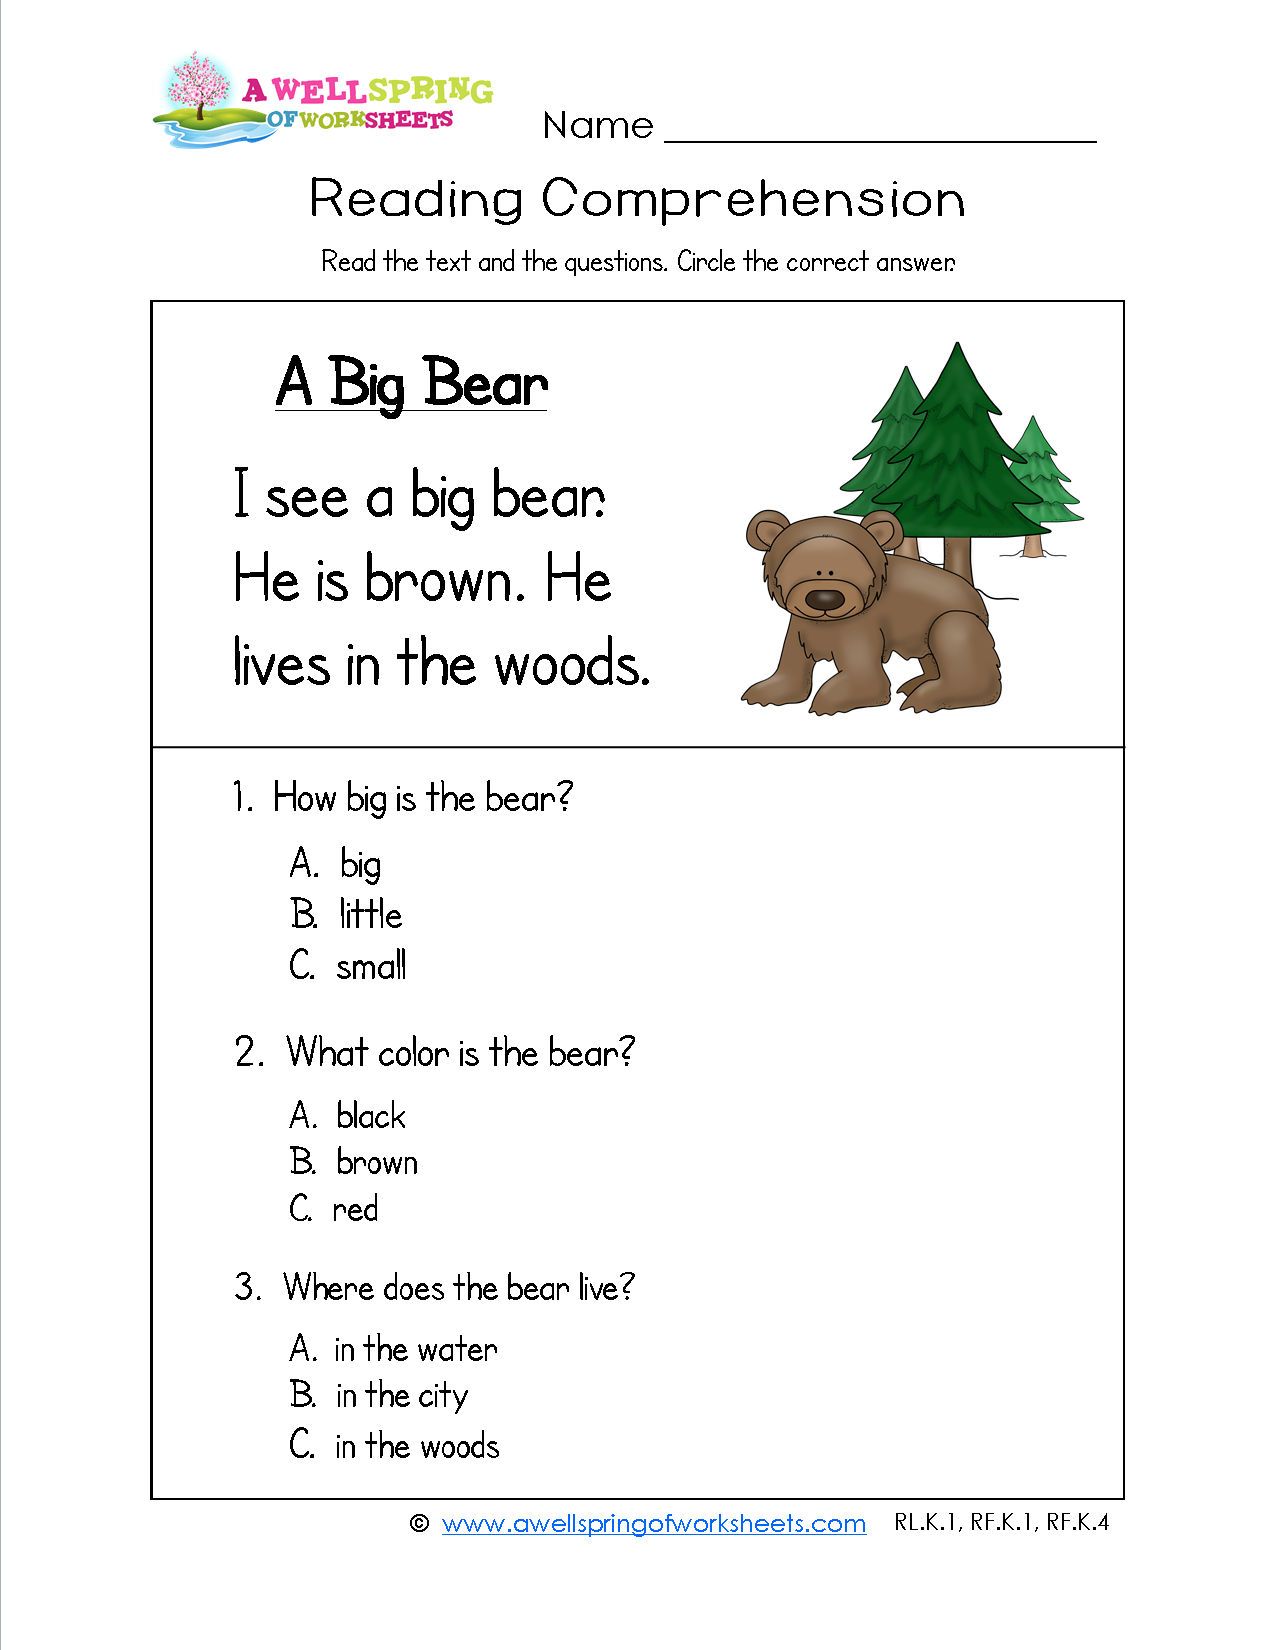 kindergarten reading comprehension lesson plan essay Here we give reading comprehension activities for problem and solution in the elementary grades in reading, writing, listening and speaking we include defining the terms, participation ideas, two free graphic organizers on problem and solution, acting it out, and an idea for a project/essay.